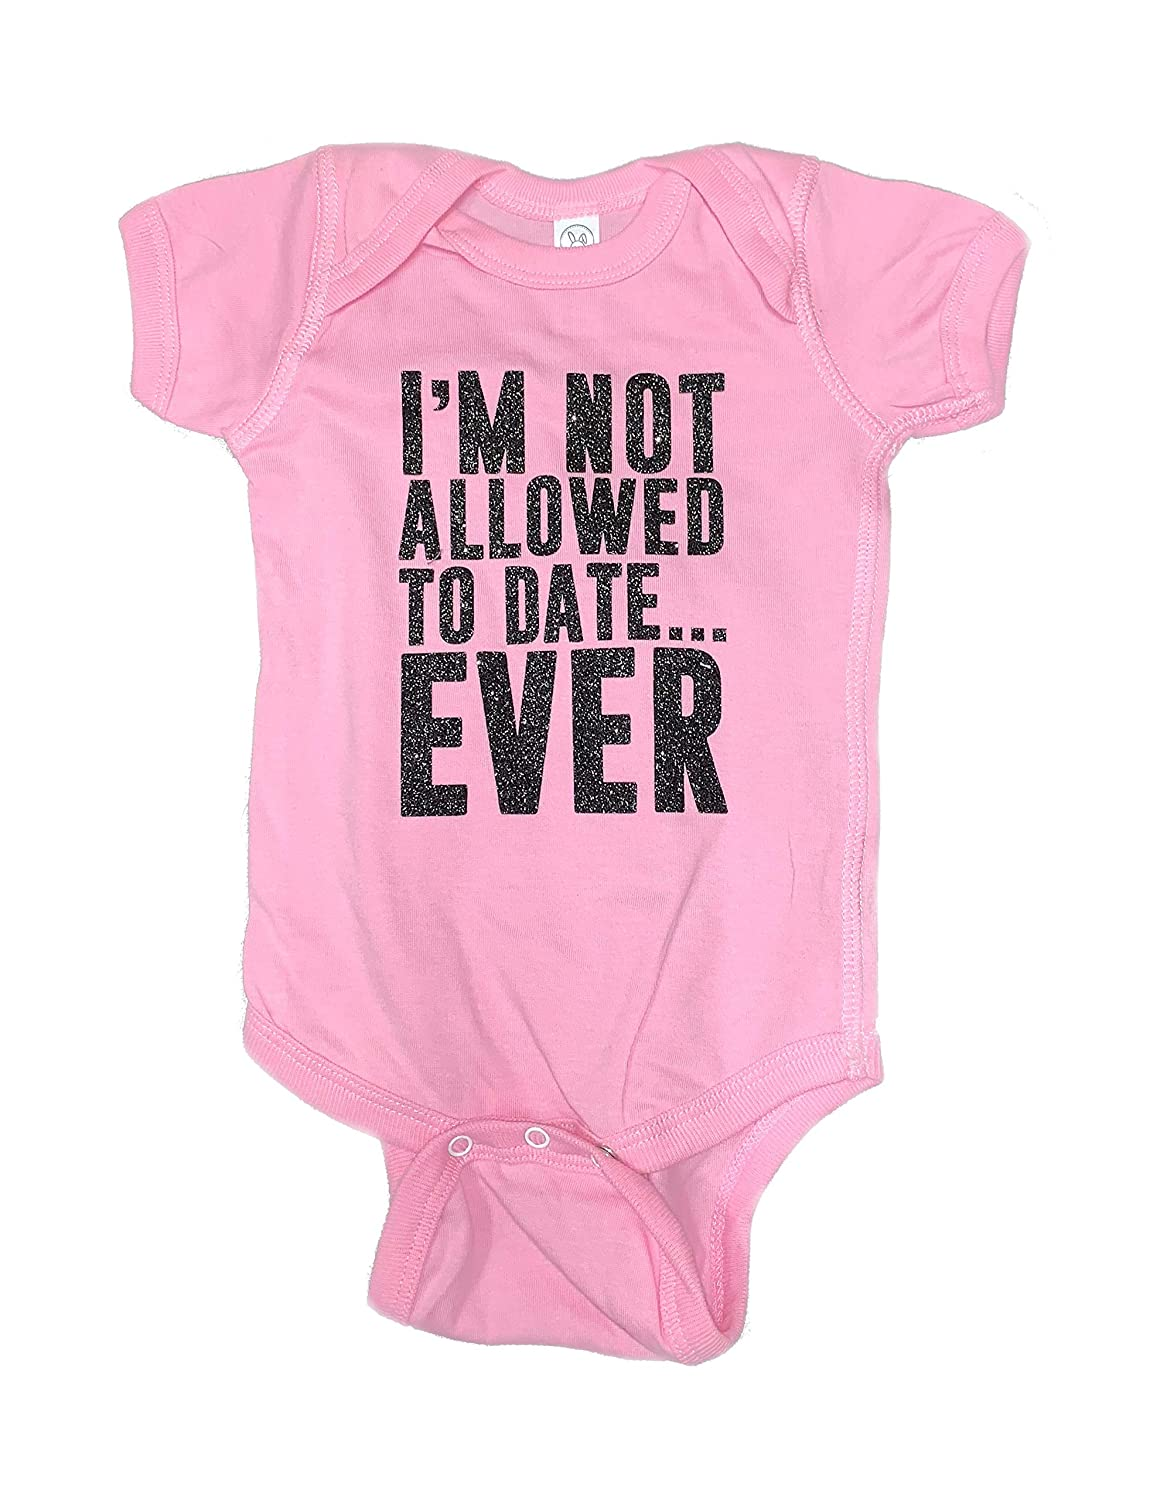 98-35 Im Not Allowed to Date Ever Cute Funny Baby Romper Bodysuits Sizes One Piece